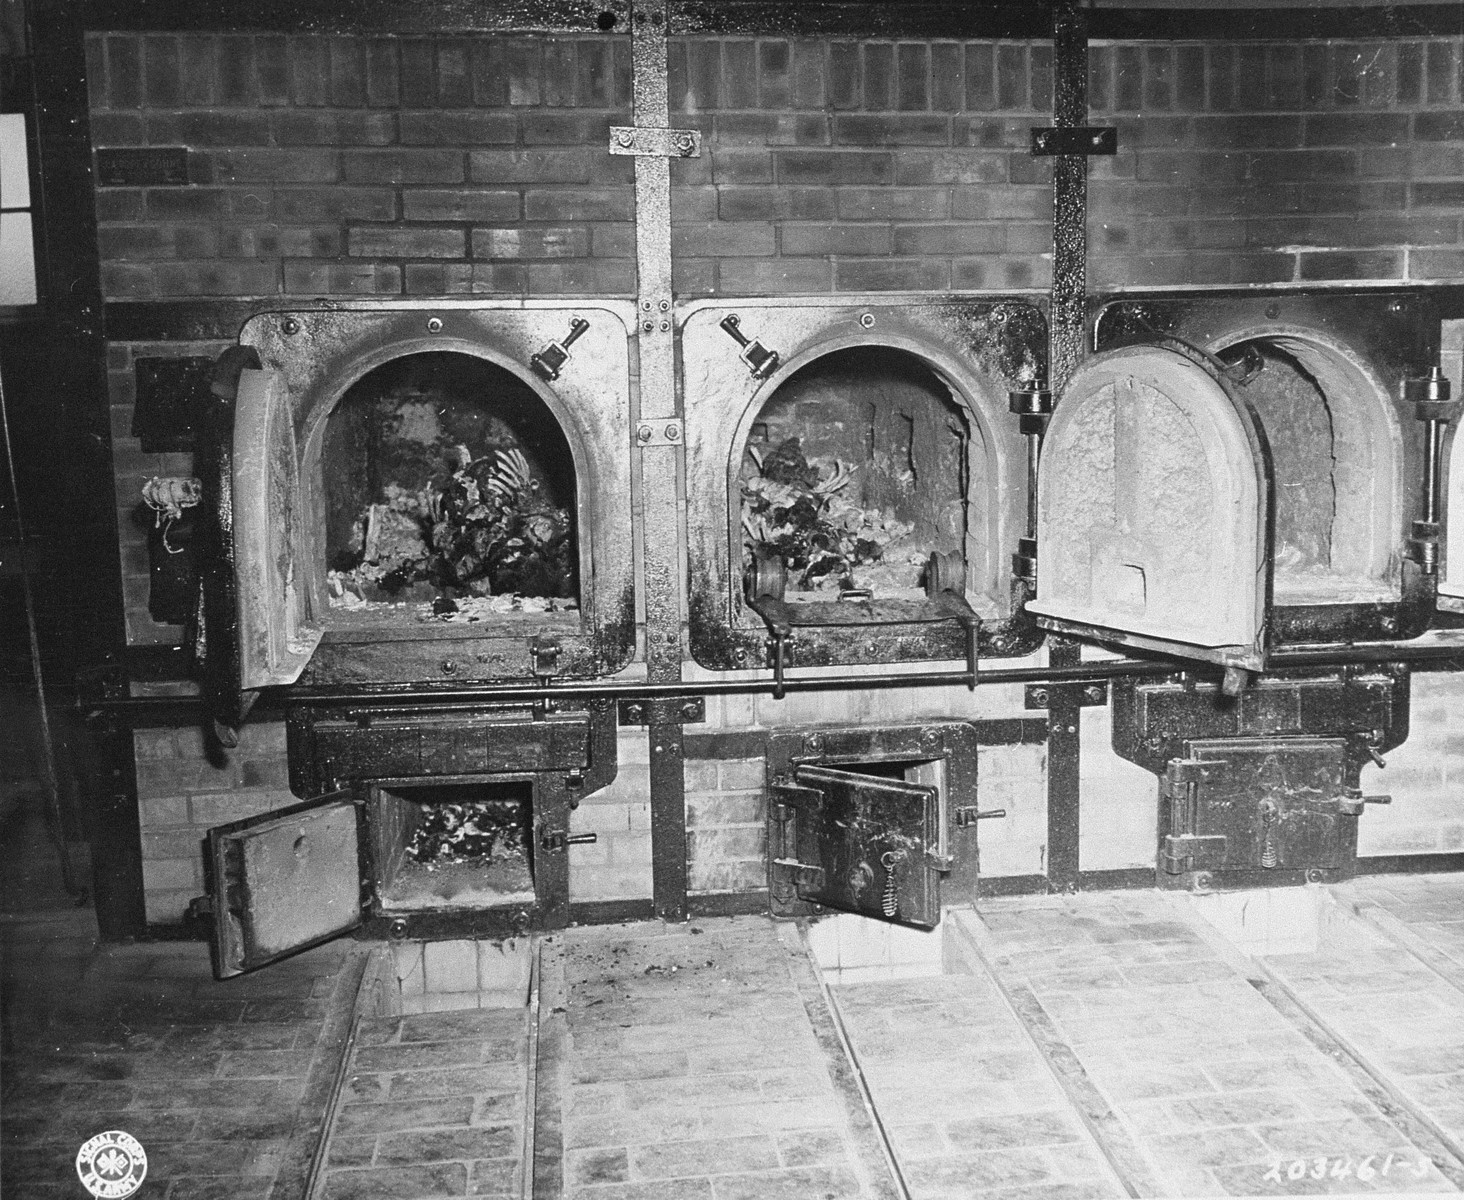 Human remains found by American troops in the crematoria ovens of Buchenwald.